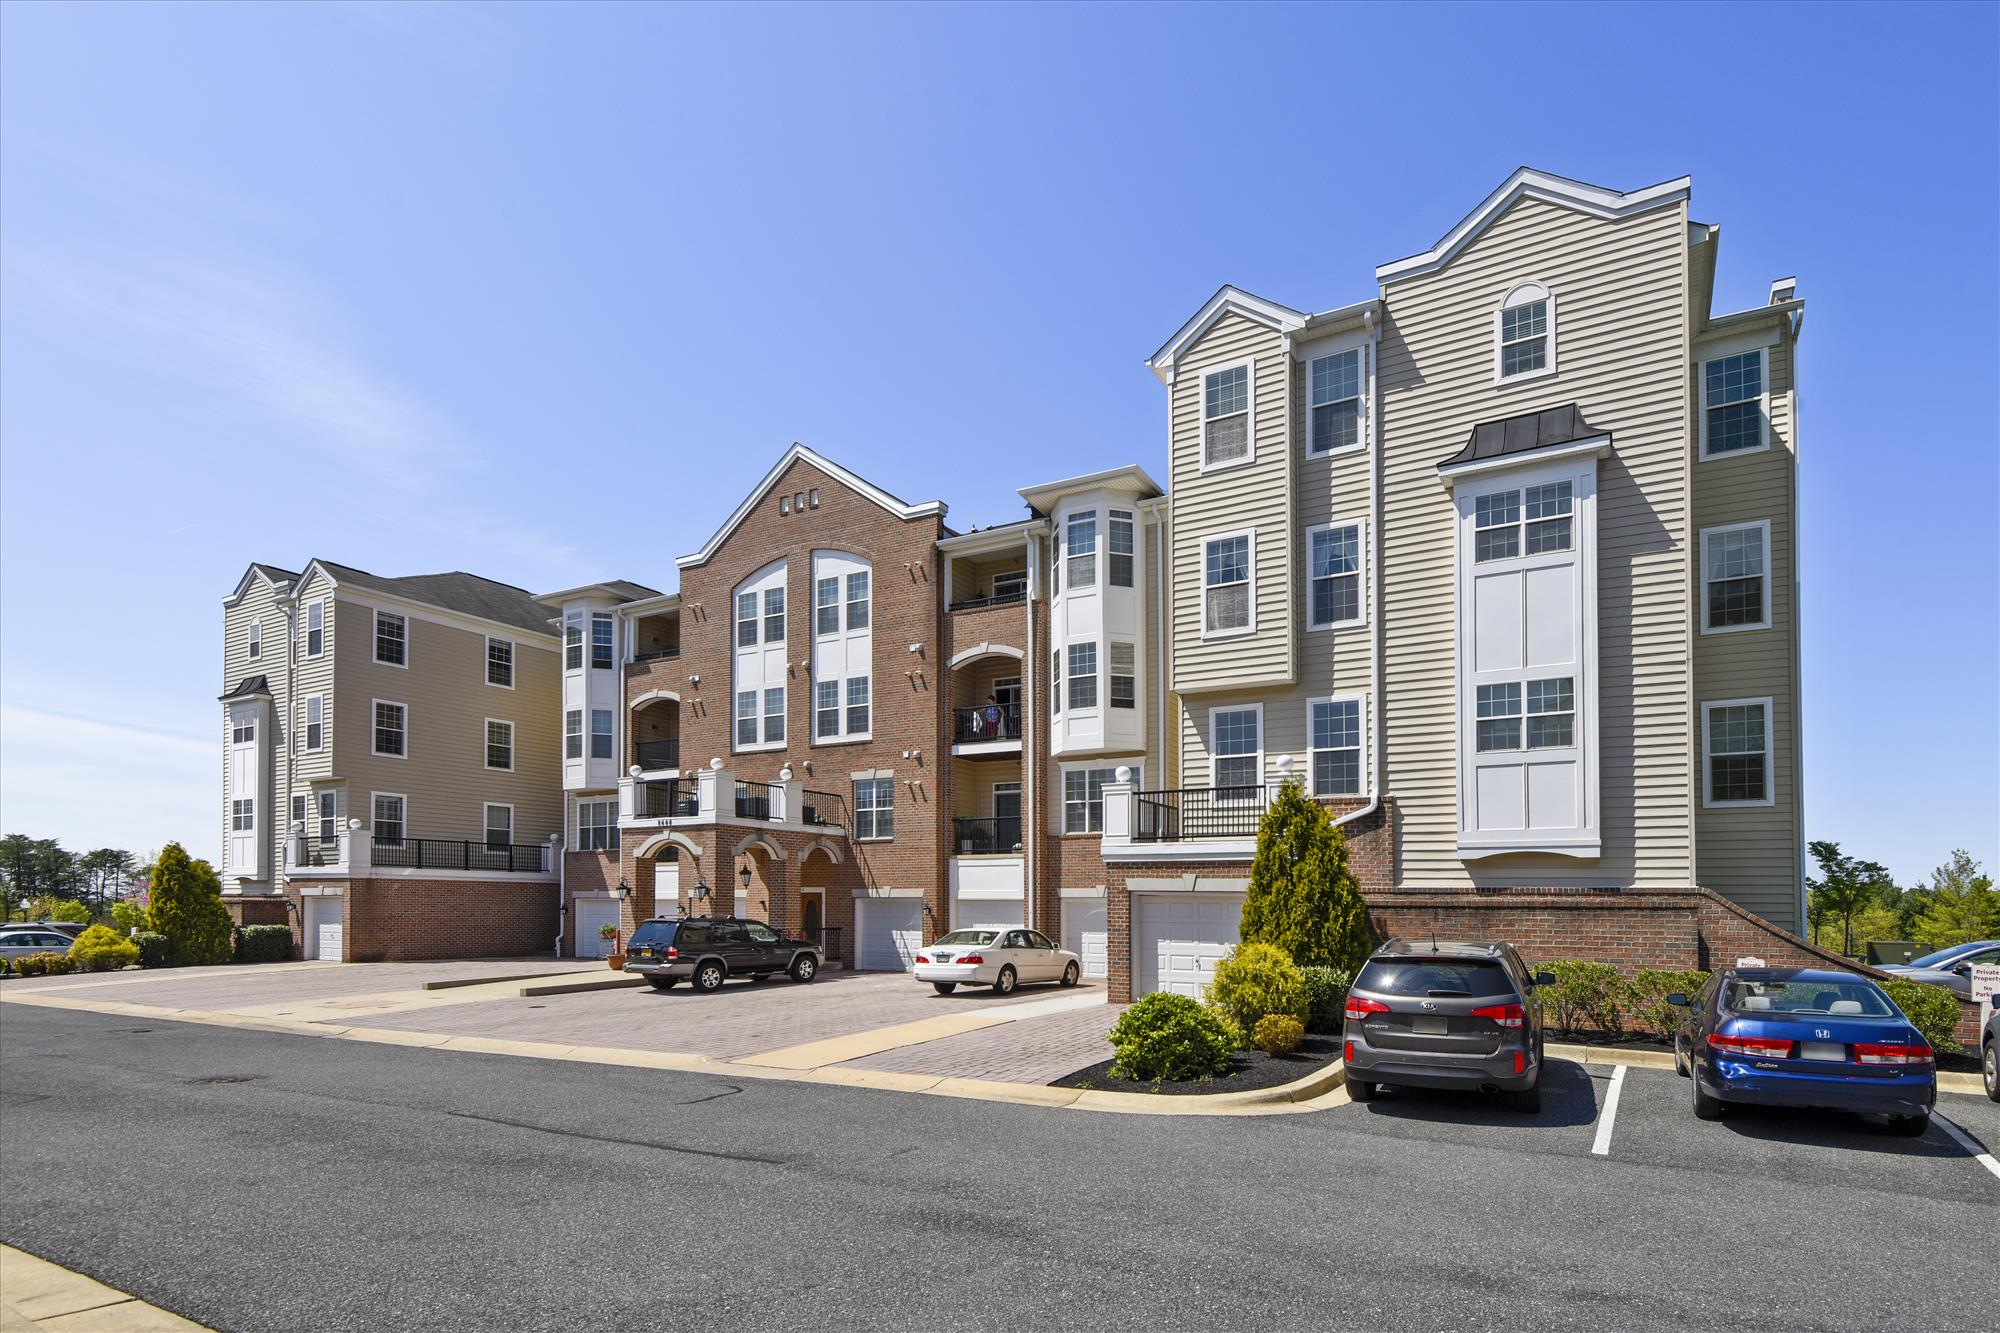 Piney Orchard condo for sale in Odenton MD